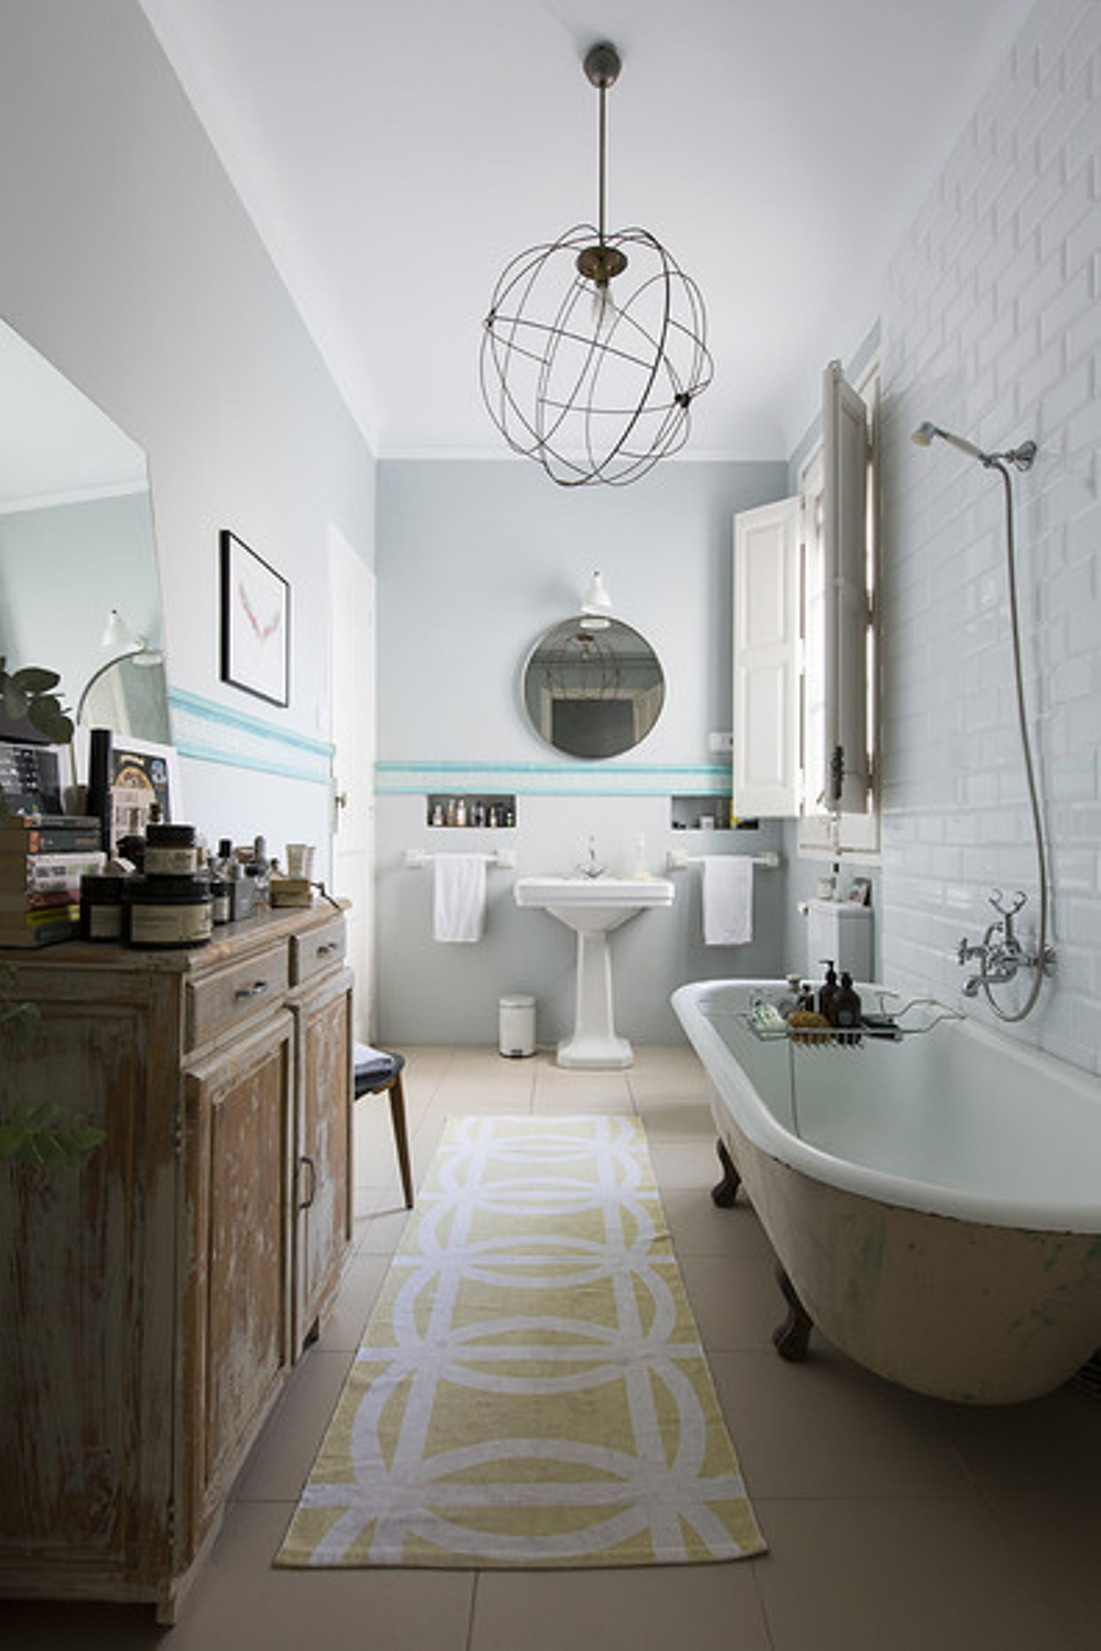 small-vintage-bathroom-ideas (26)